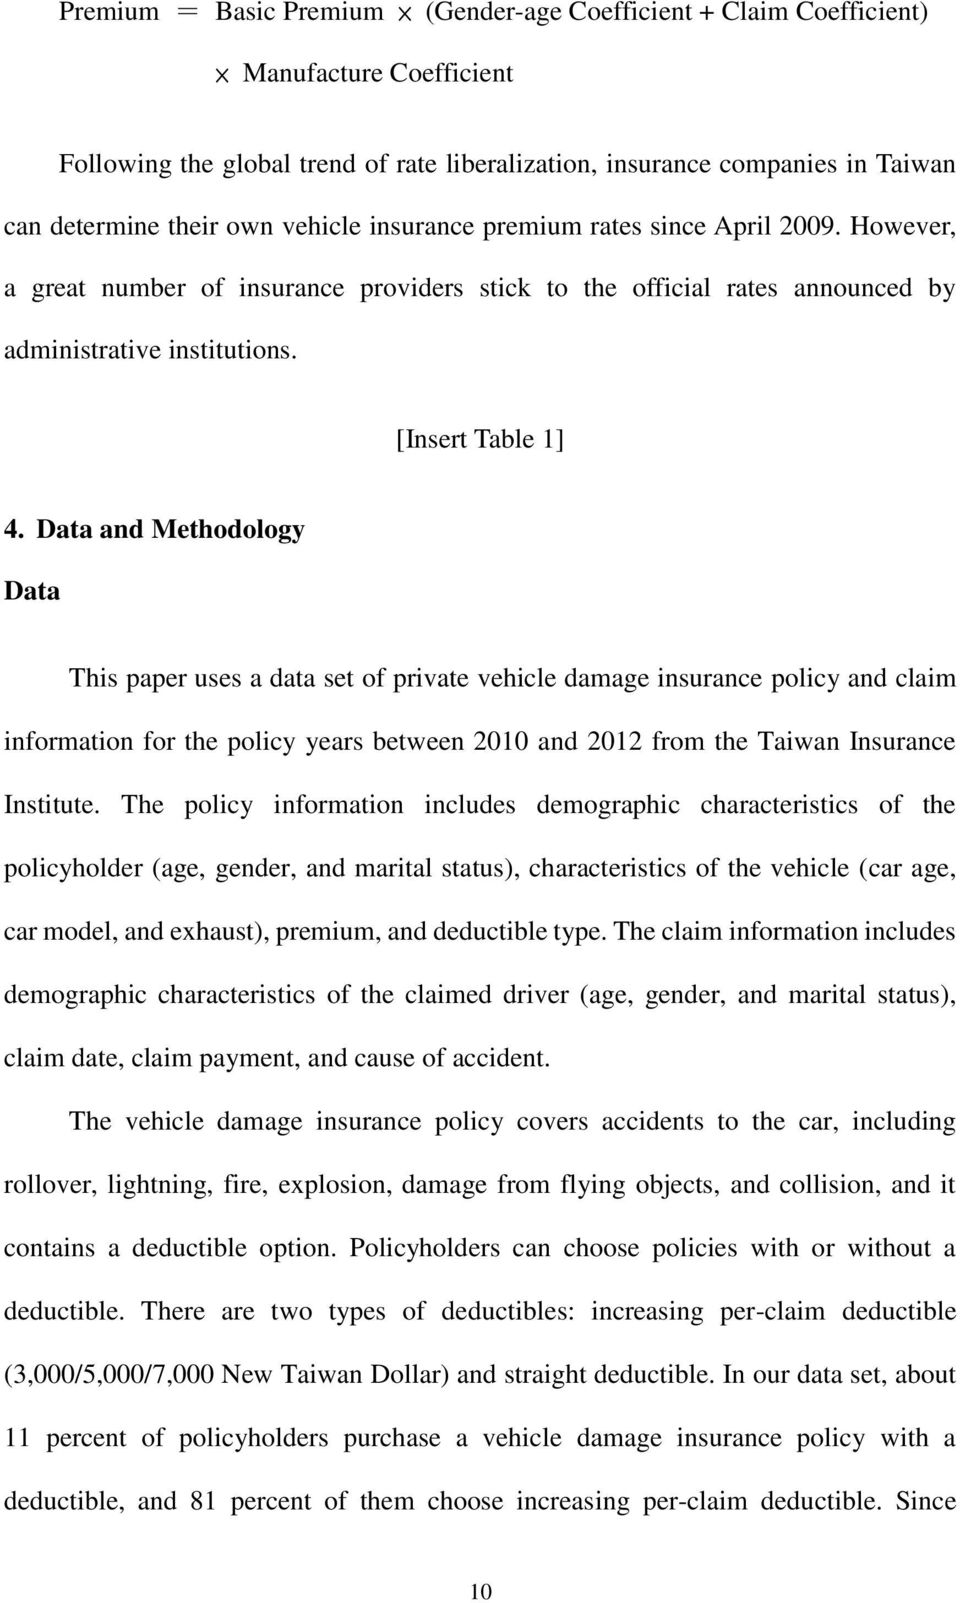 Data and Methodology Data This paper uses a data set of private vehicle damage insurance policy and claim information for the policy years between 2010 and 2012 from the Taiwan Insurance Institute.